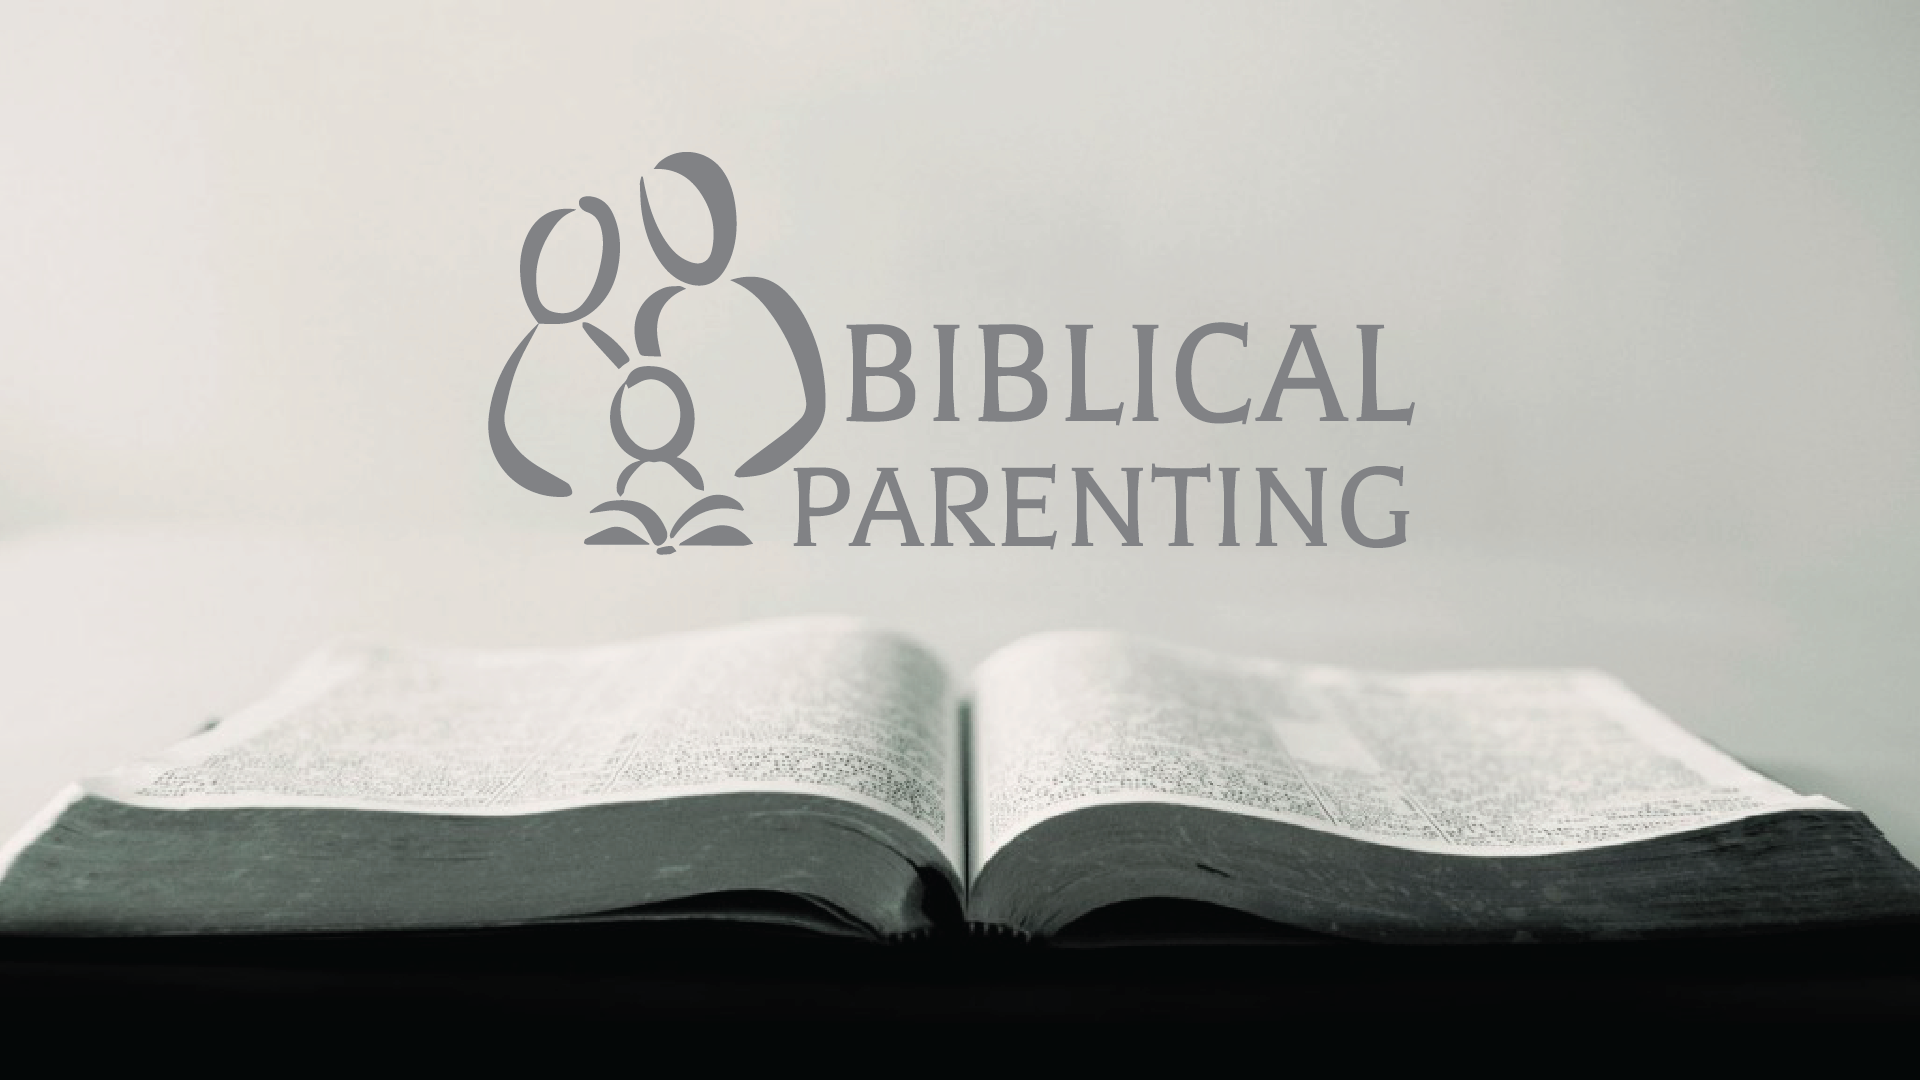 Find resources that can assist you to parent your children and teenagers with Biblical standards.